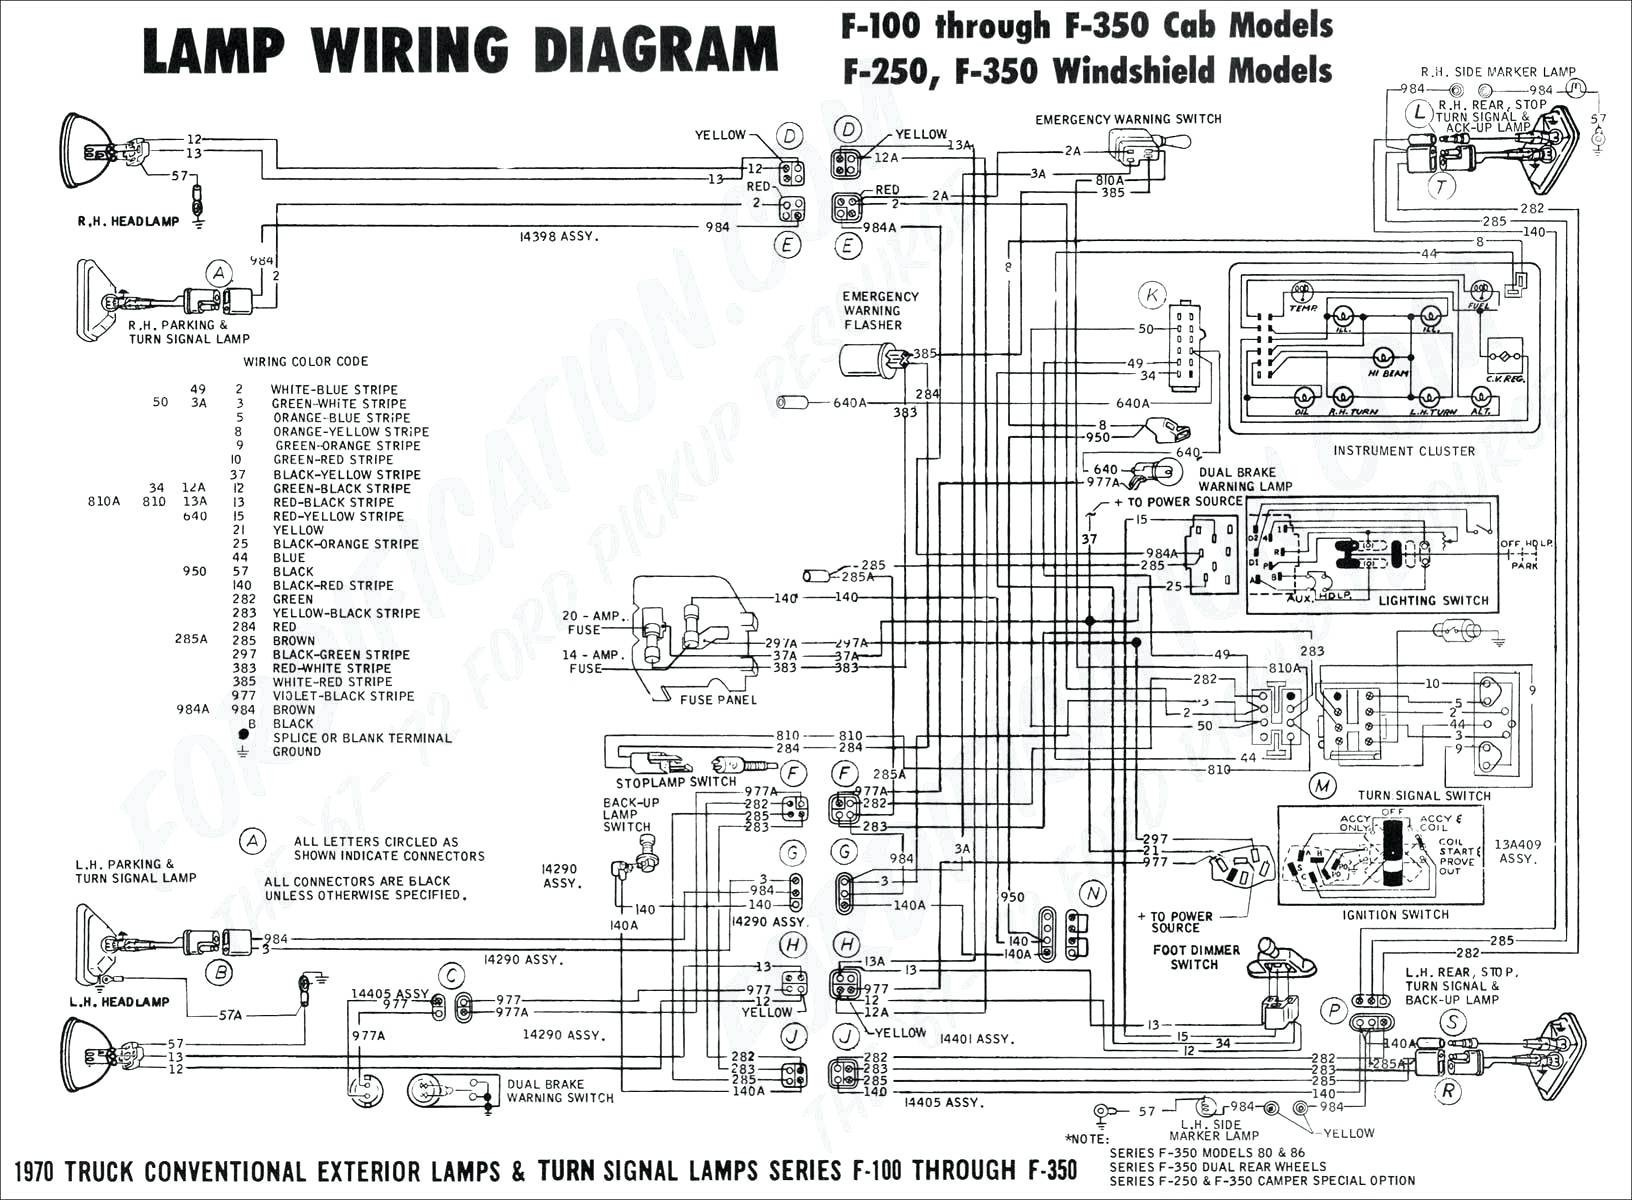 2002 Dodge Intrepid Engine Diagram 2001 ford F550 Wiring